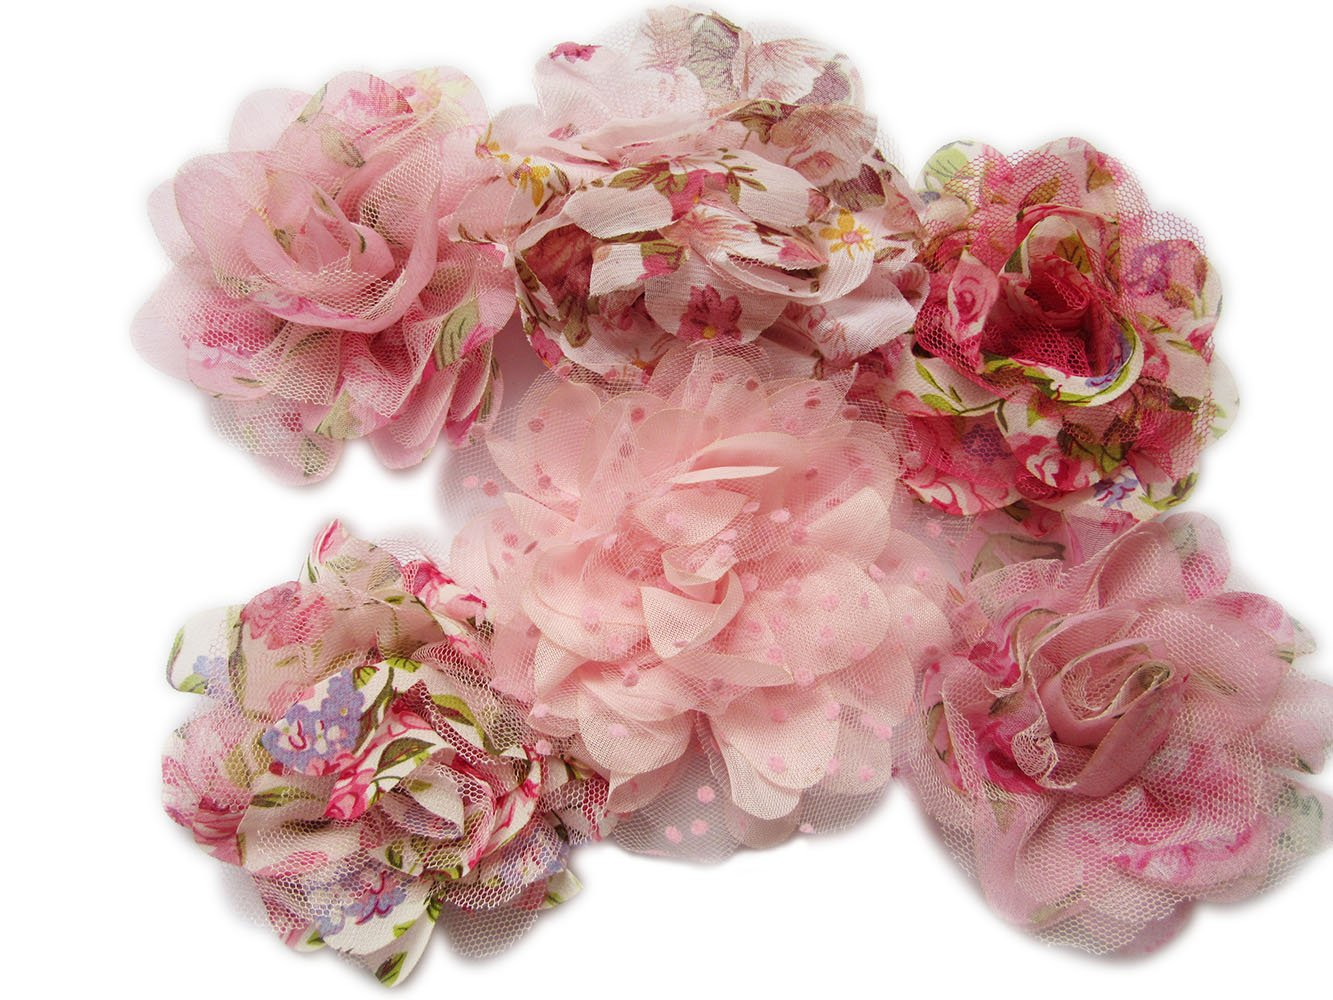 YYCRAFT 10 pcs Pink Floral Print Chiffon Flower for Kids Girls Headband Baby Flowers Bows,Crafts,Party Decoration(3.5'')